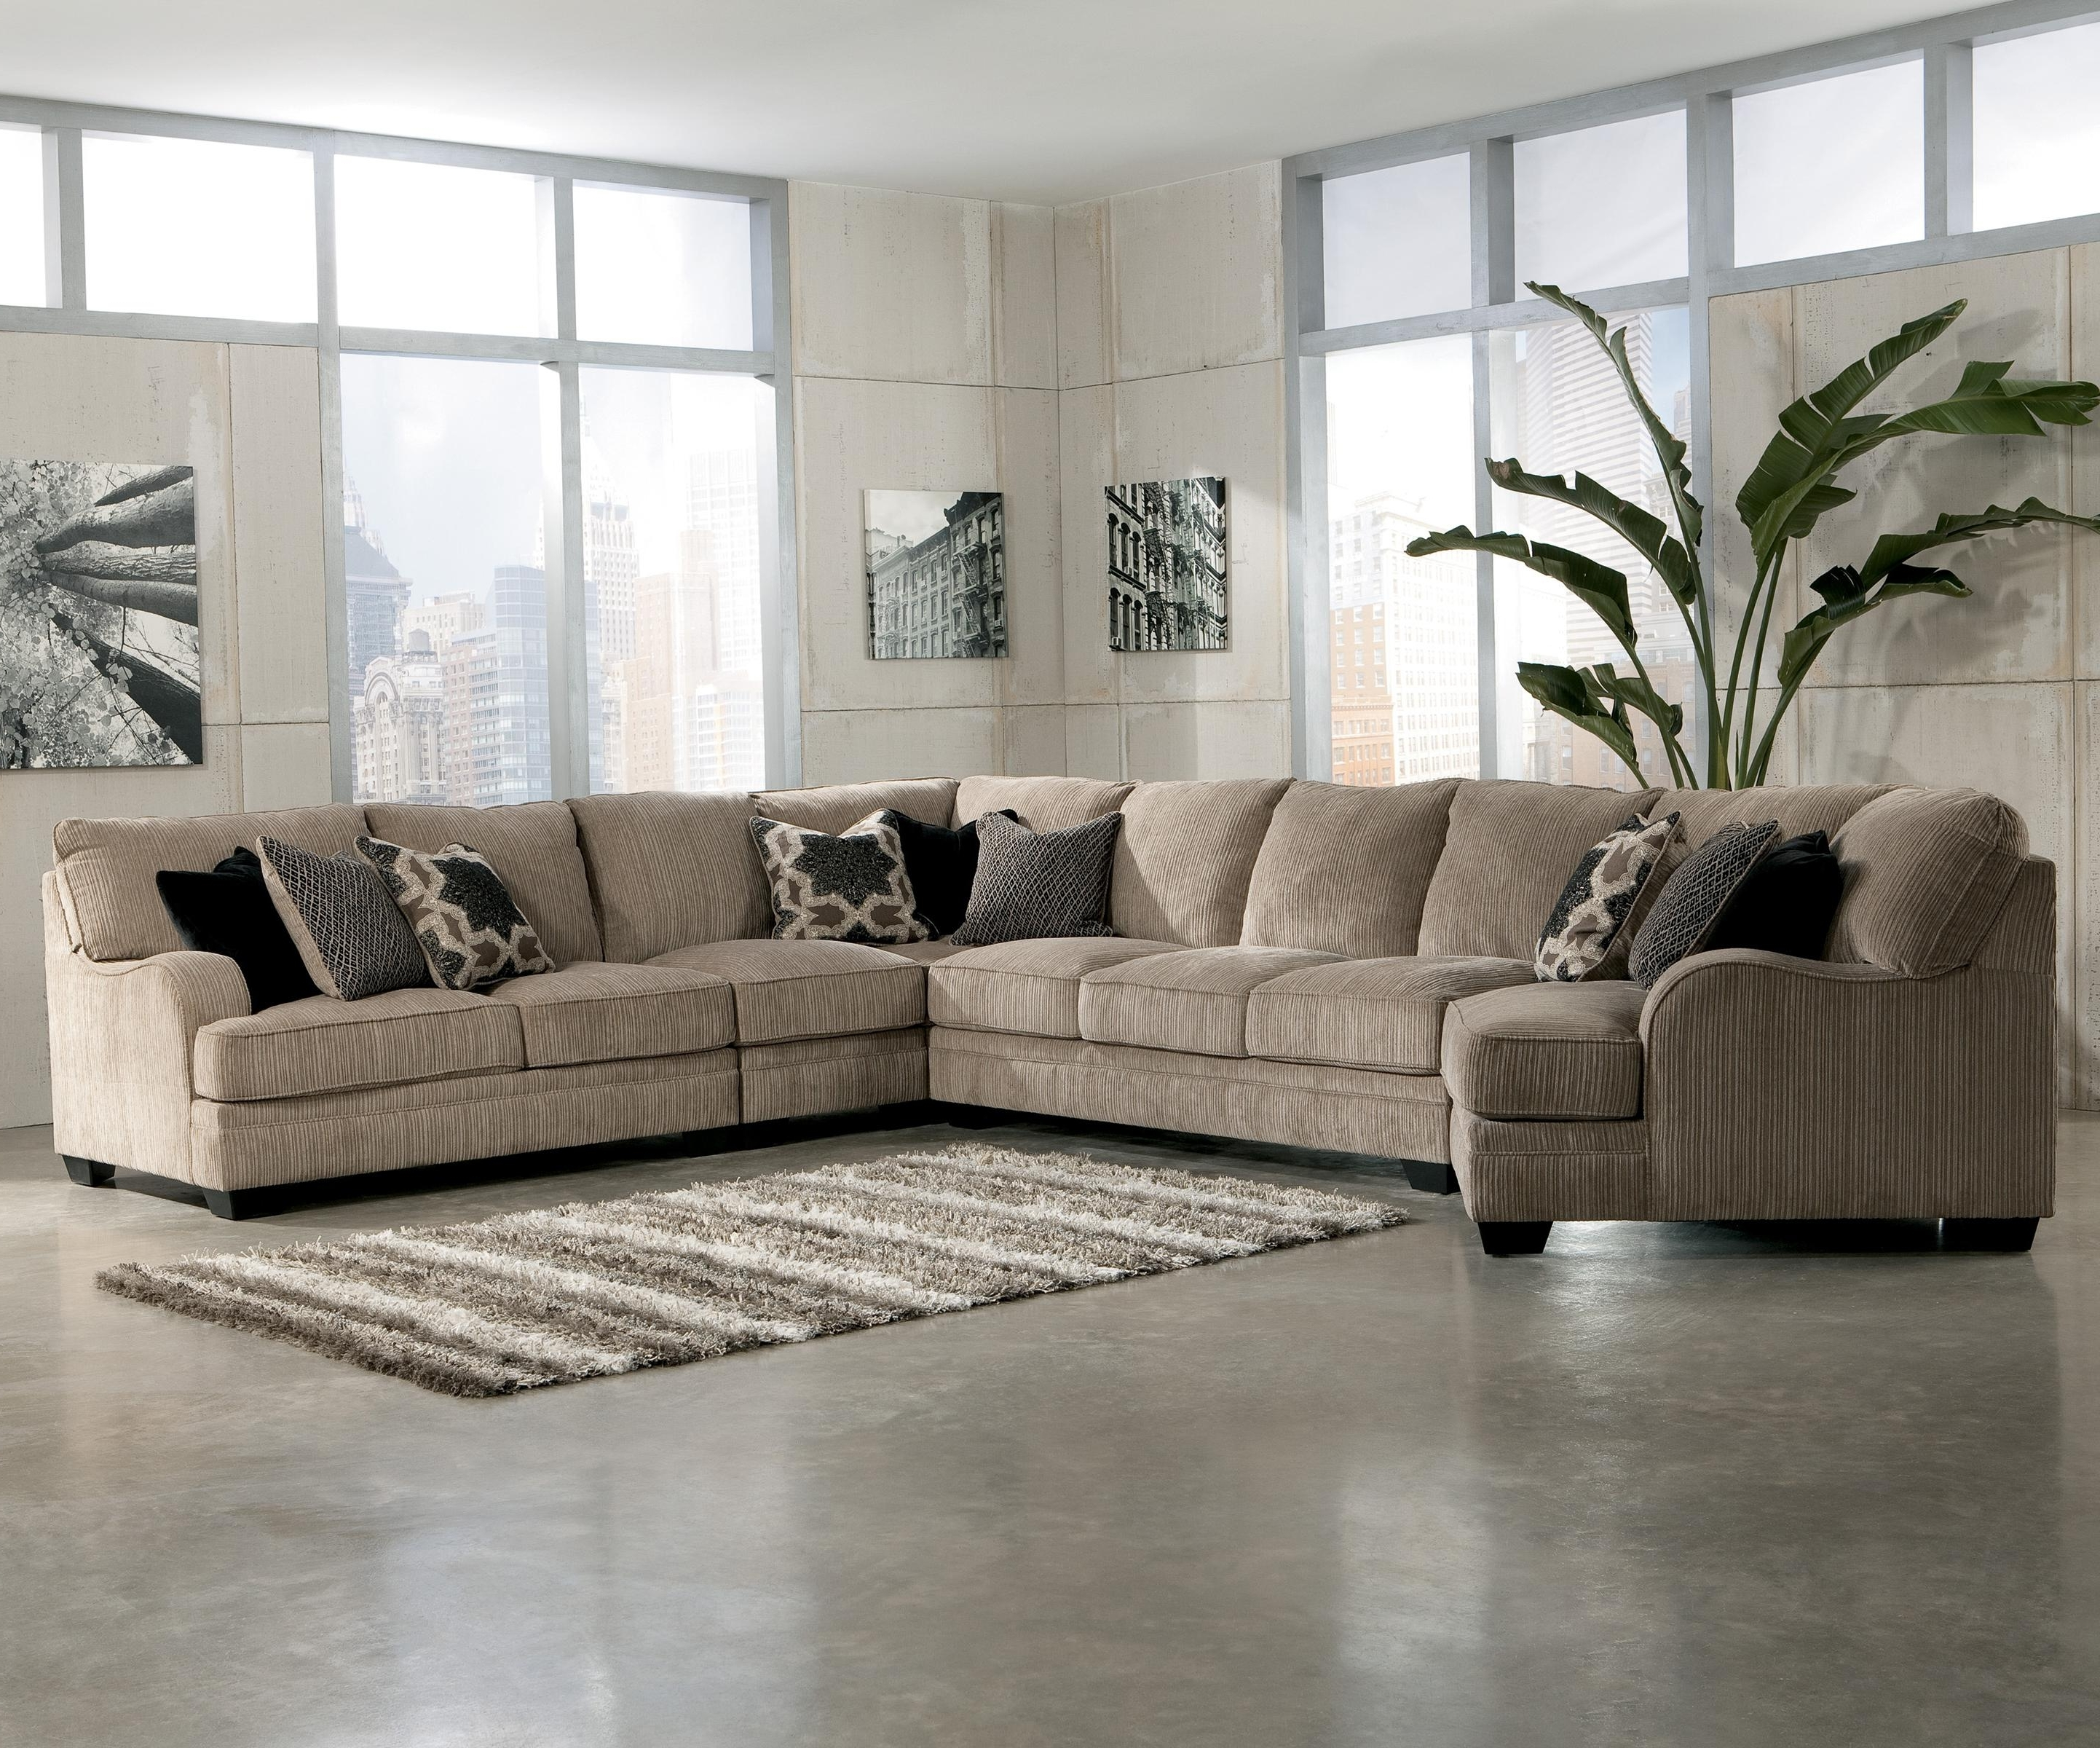 Well Known Signature Designashley Katisha – Platinum 5 Piece Sectional Pertaining To Sectional Sofas In North Carolina (View 17 of 20)